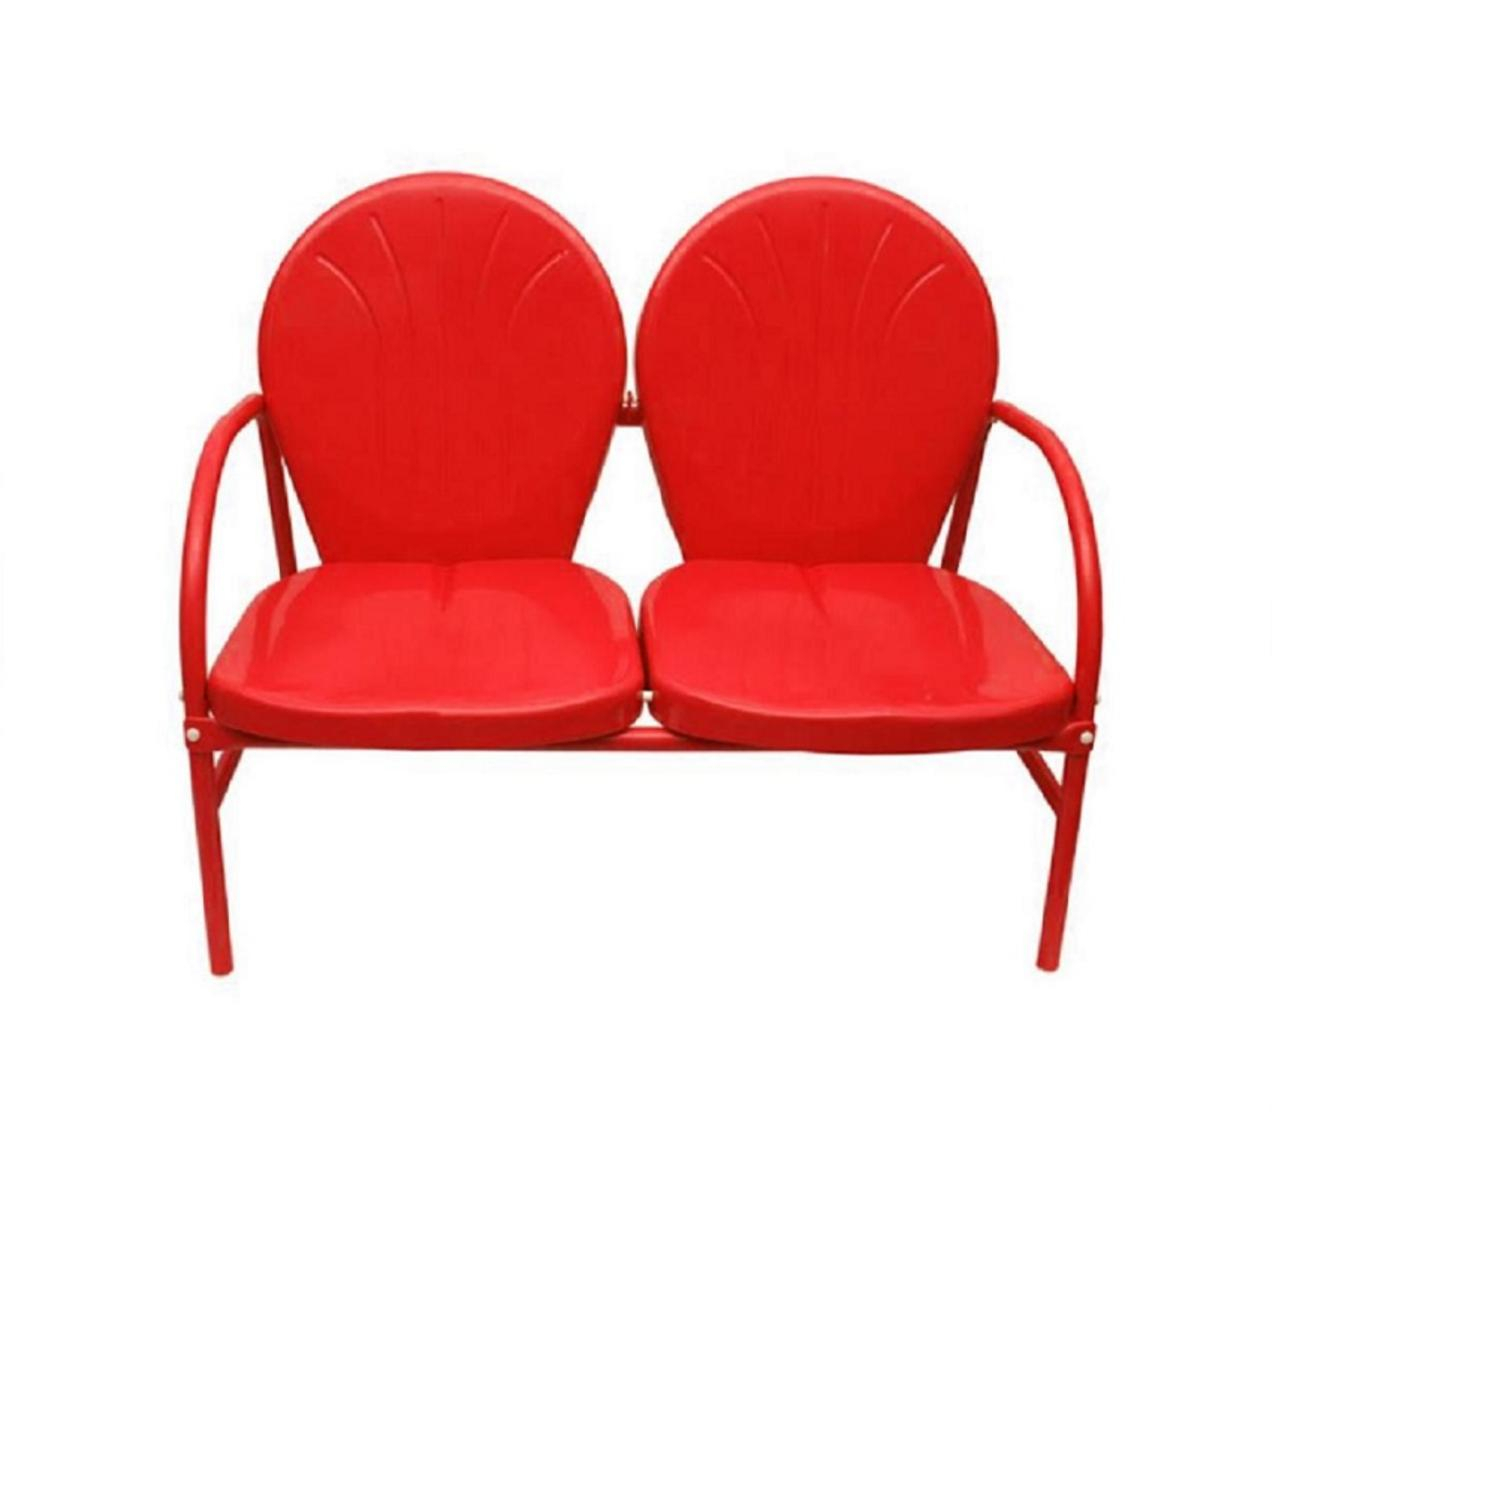 Patio Furniture & Accessories Northlight Vibrant Red Retro Intended For Outdoor Retro Metal Double Glider Benches (View 10 of 25)